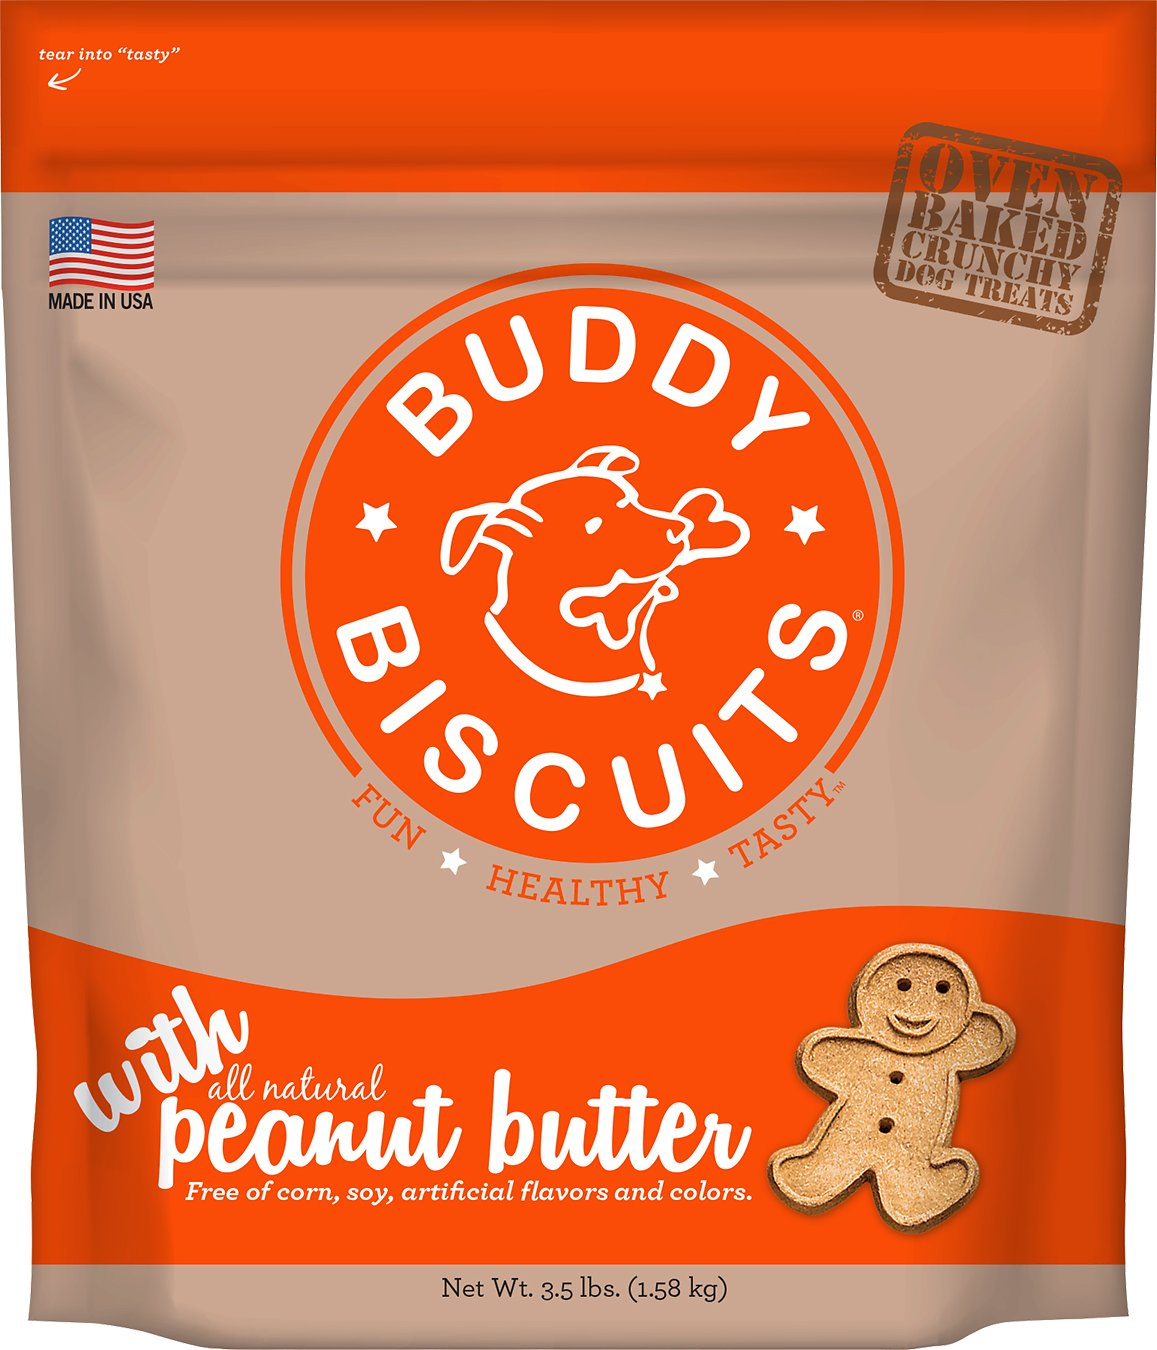 Buddy Biscuits with Peanut Butter Oven Baked Dog Treats Image